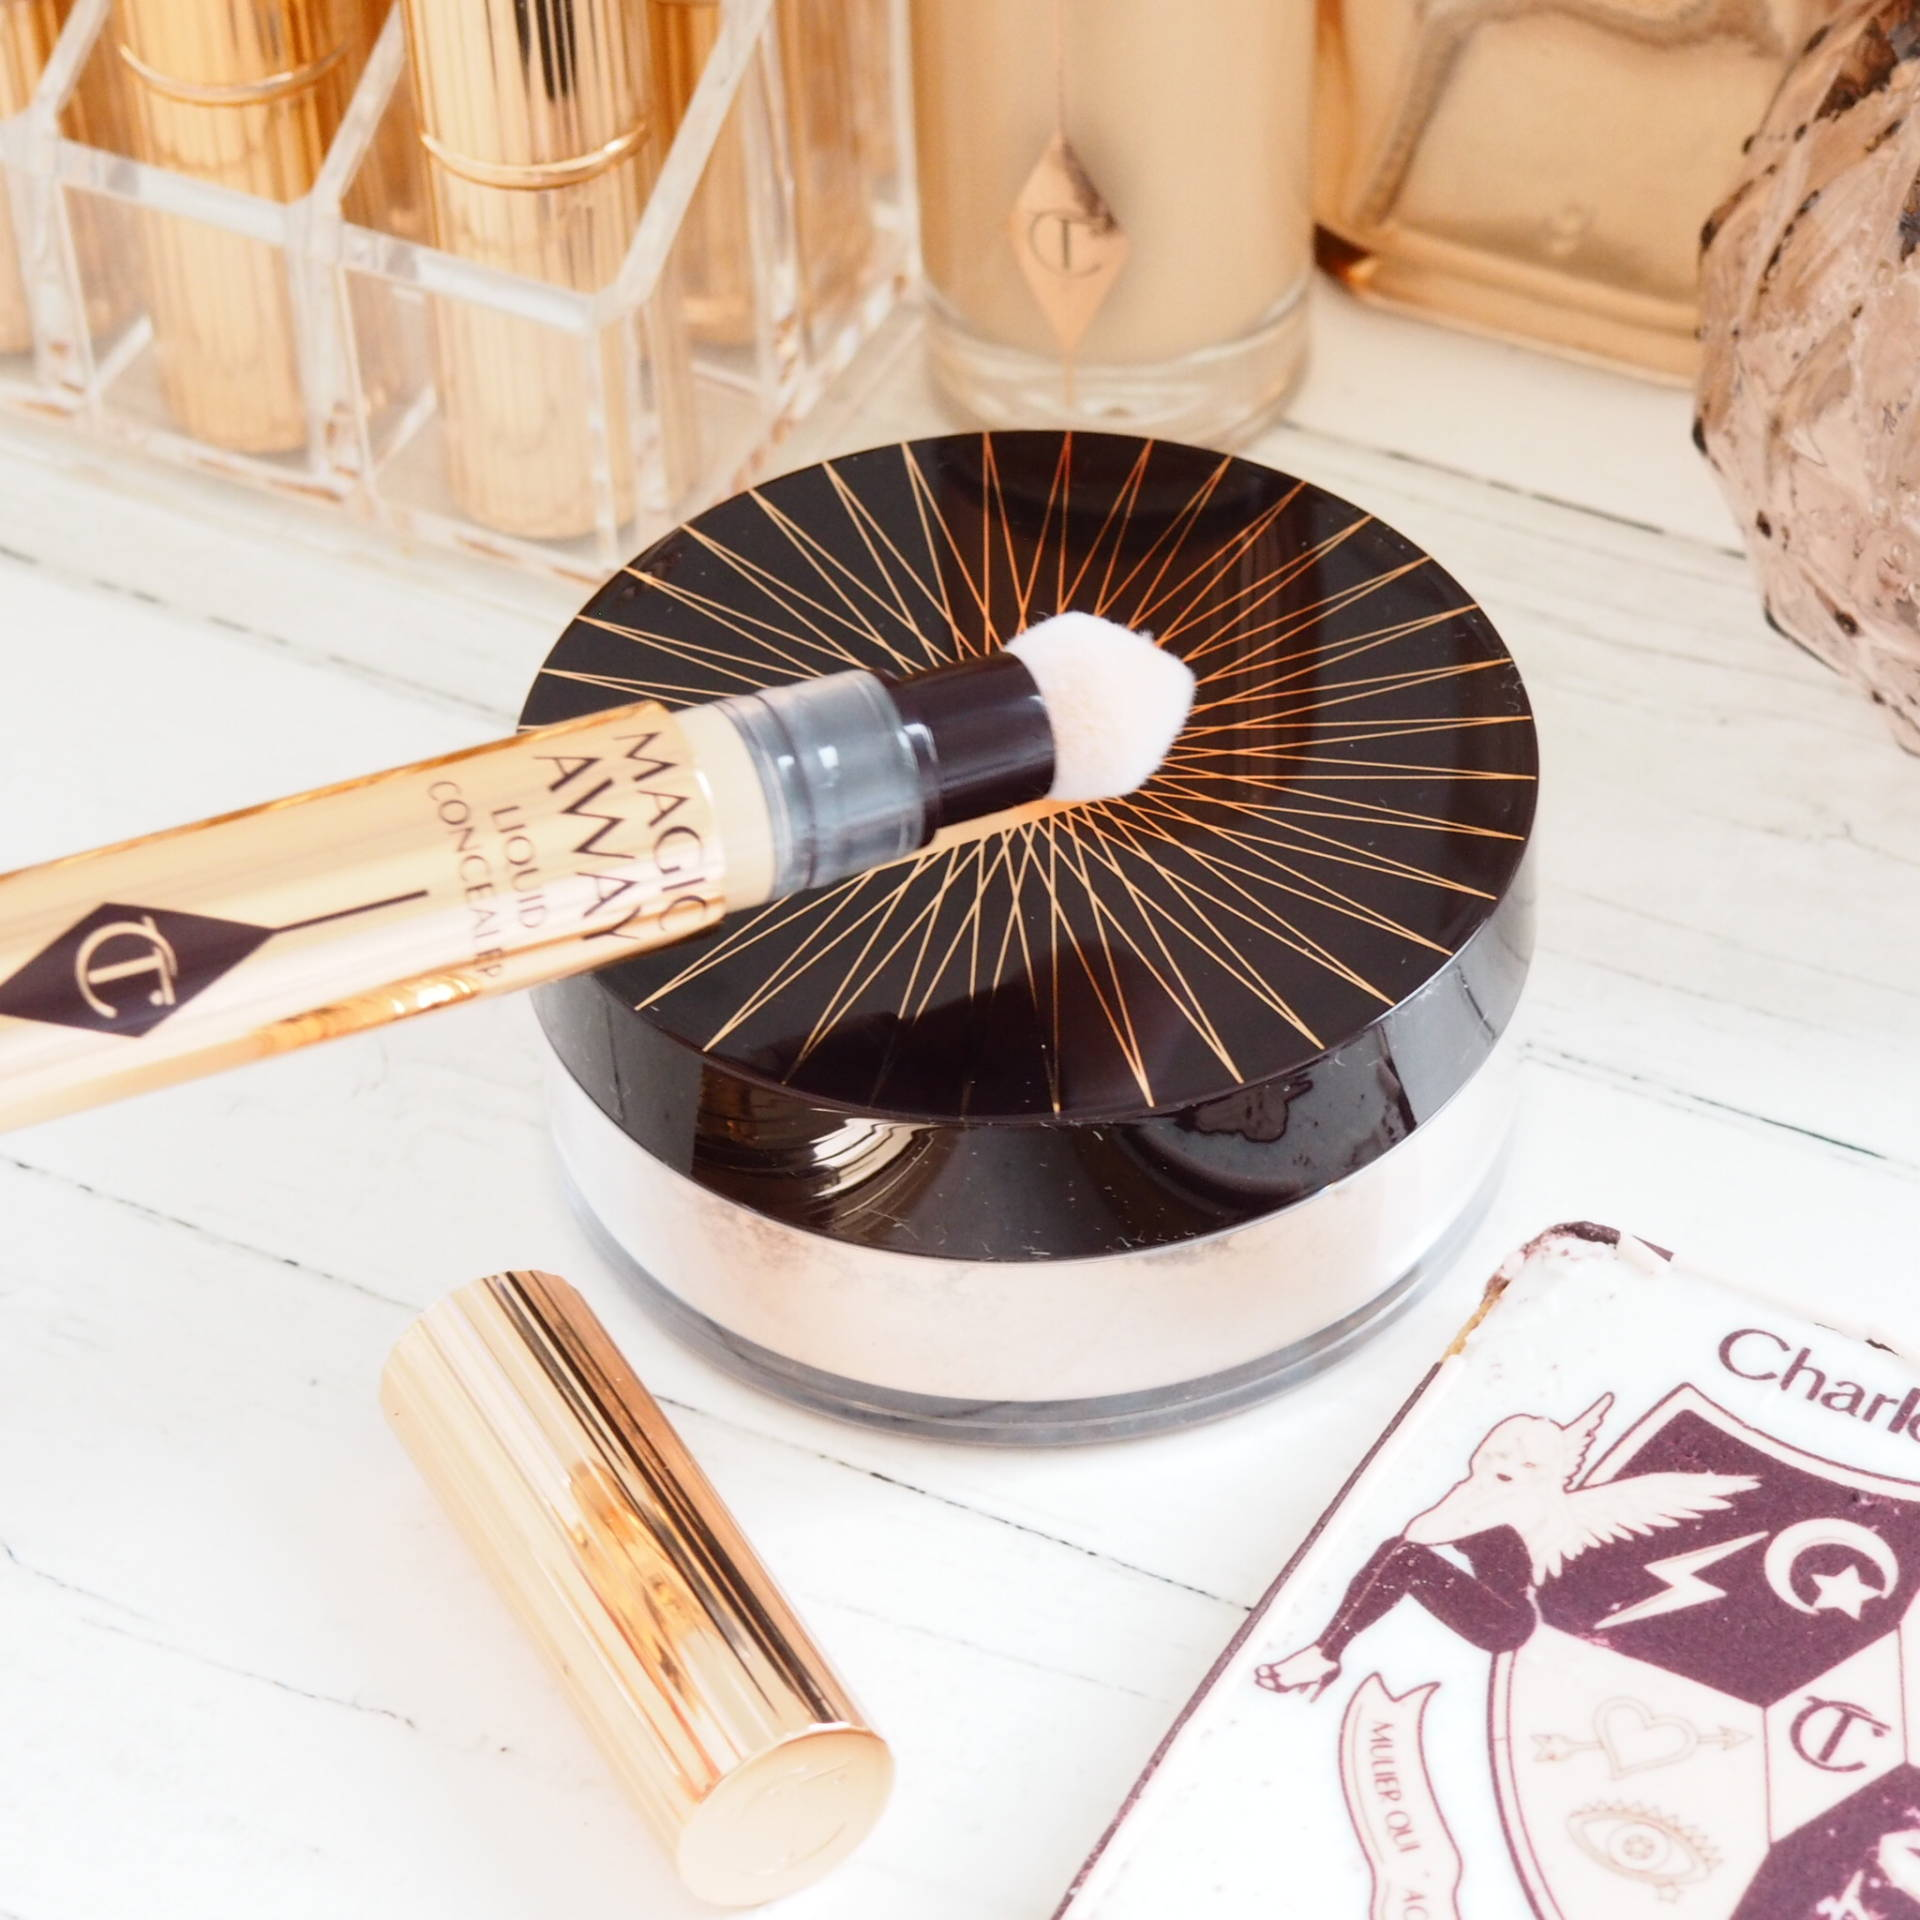 Charlotte Tilbury Genius Magic Loose Powder